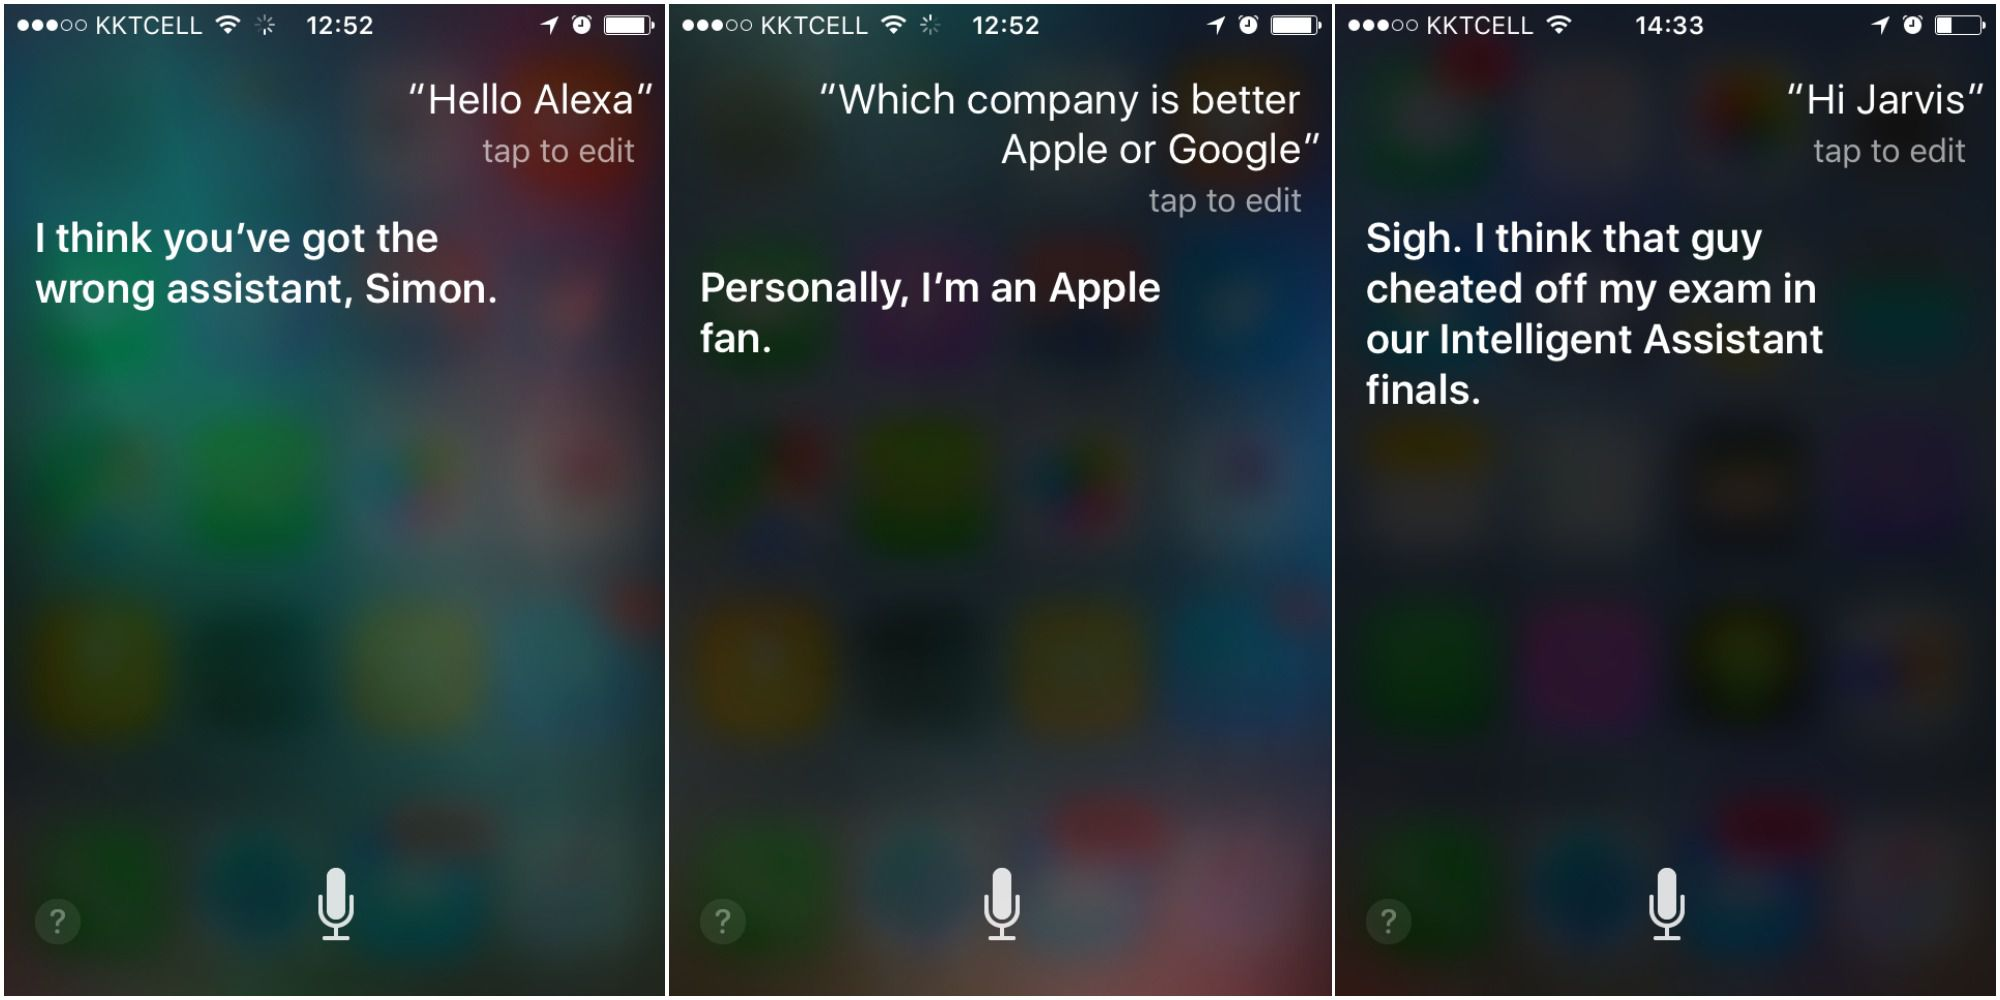 Siri being mistaken for another assistant